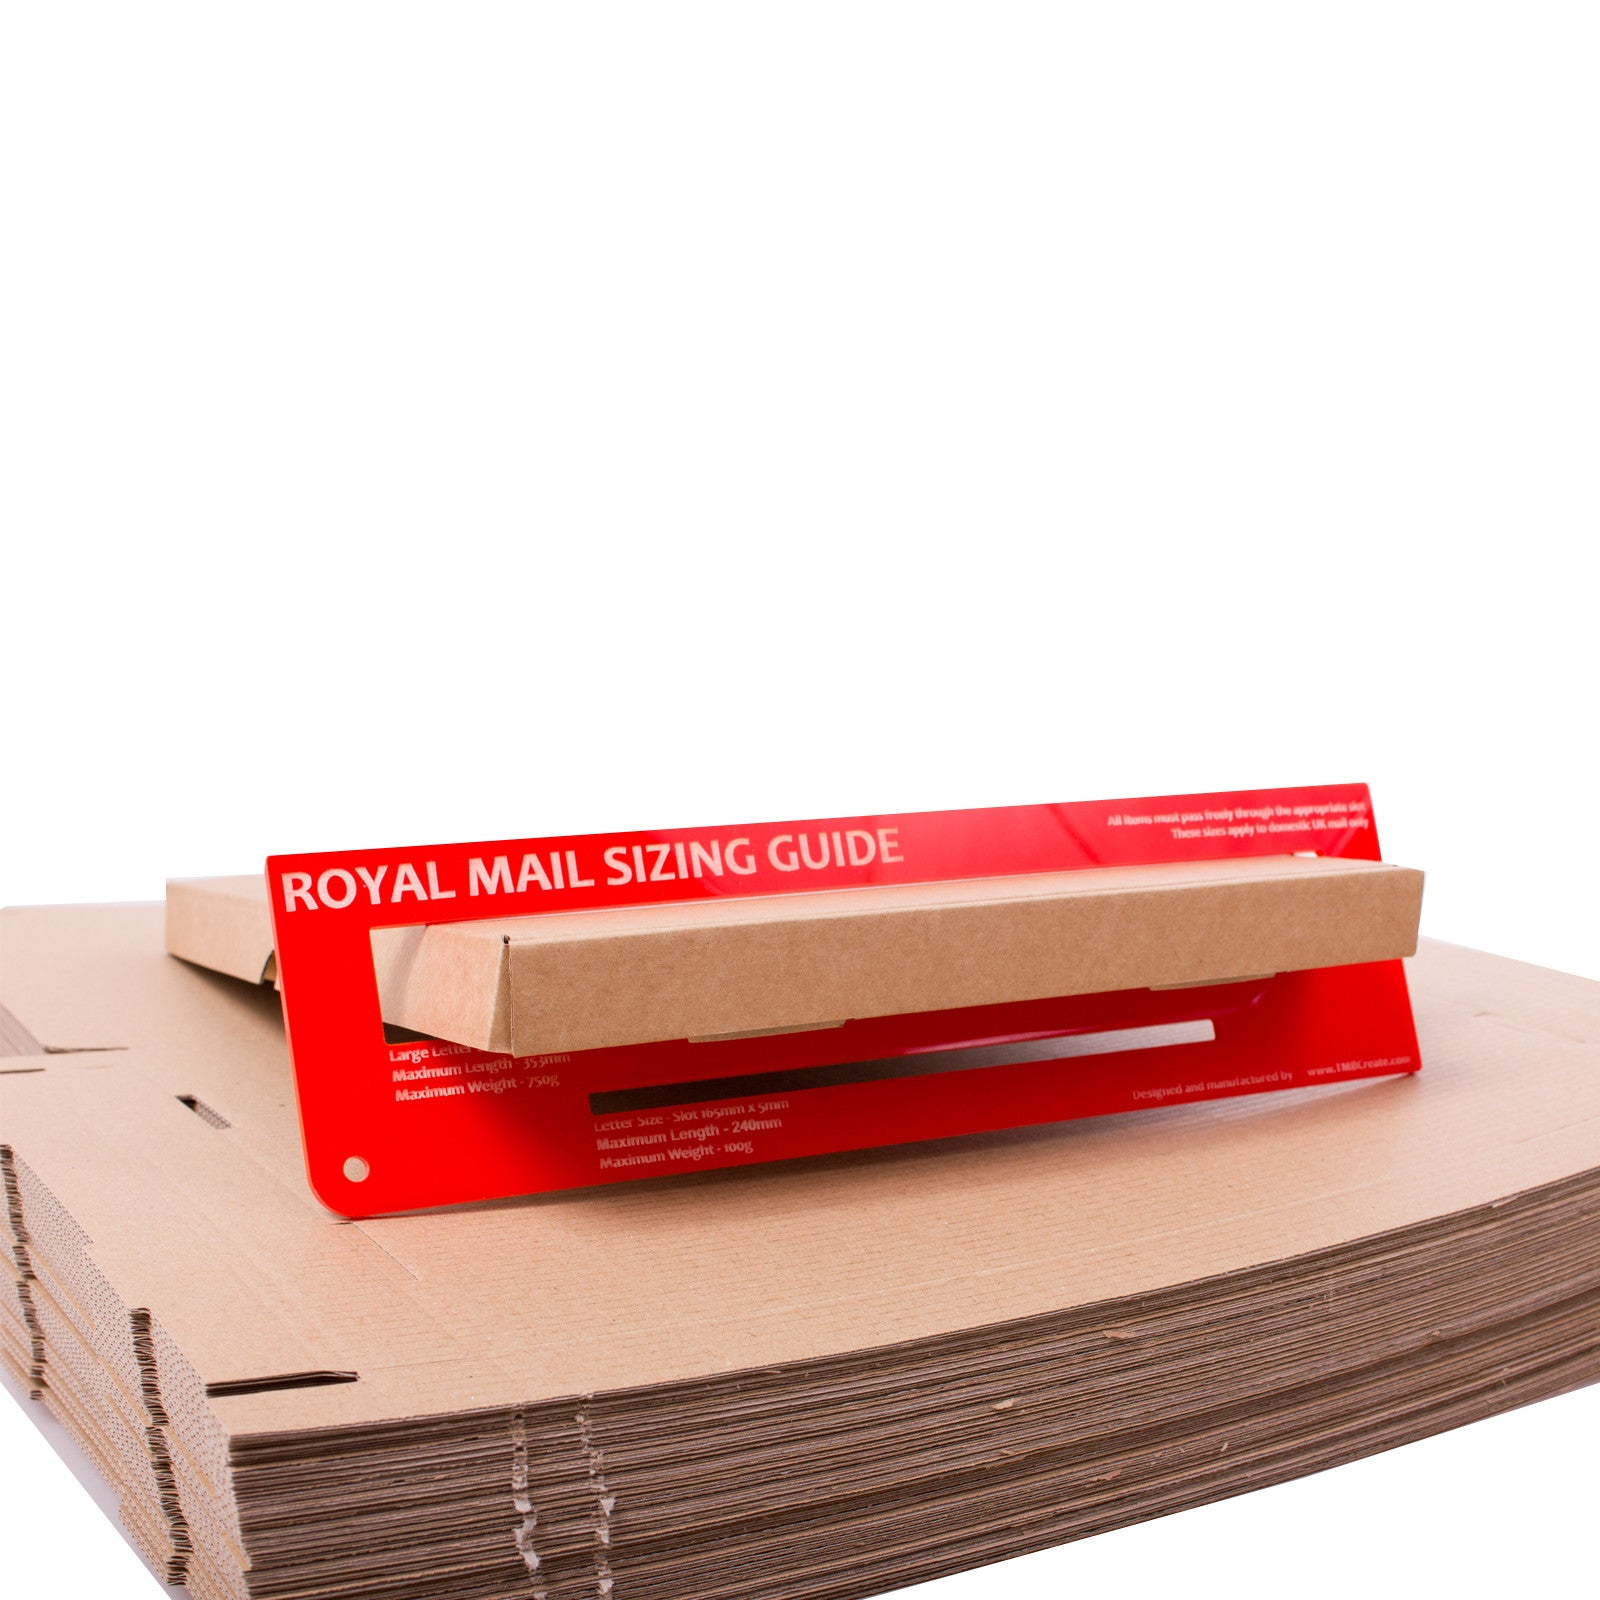 C4/A4 Royal Mail Large Letter PiP Cardboard Boxes,SR Mailing,